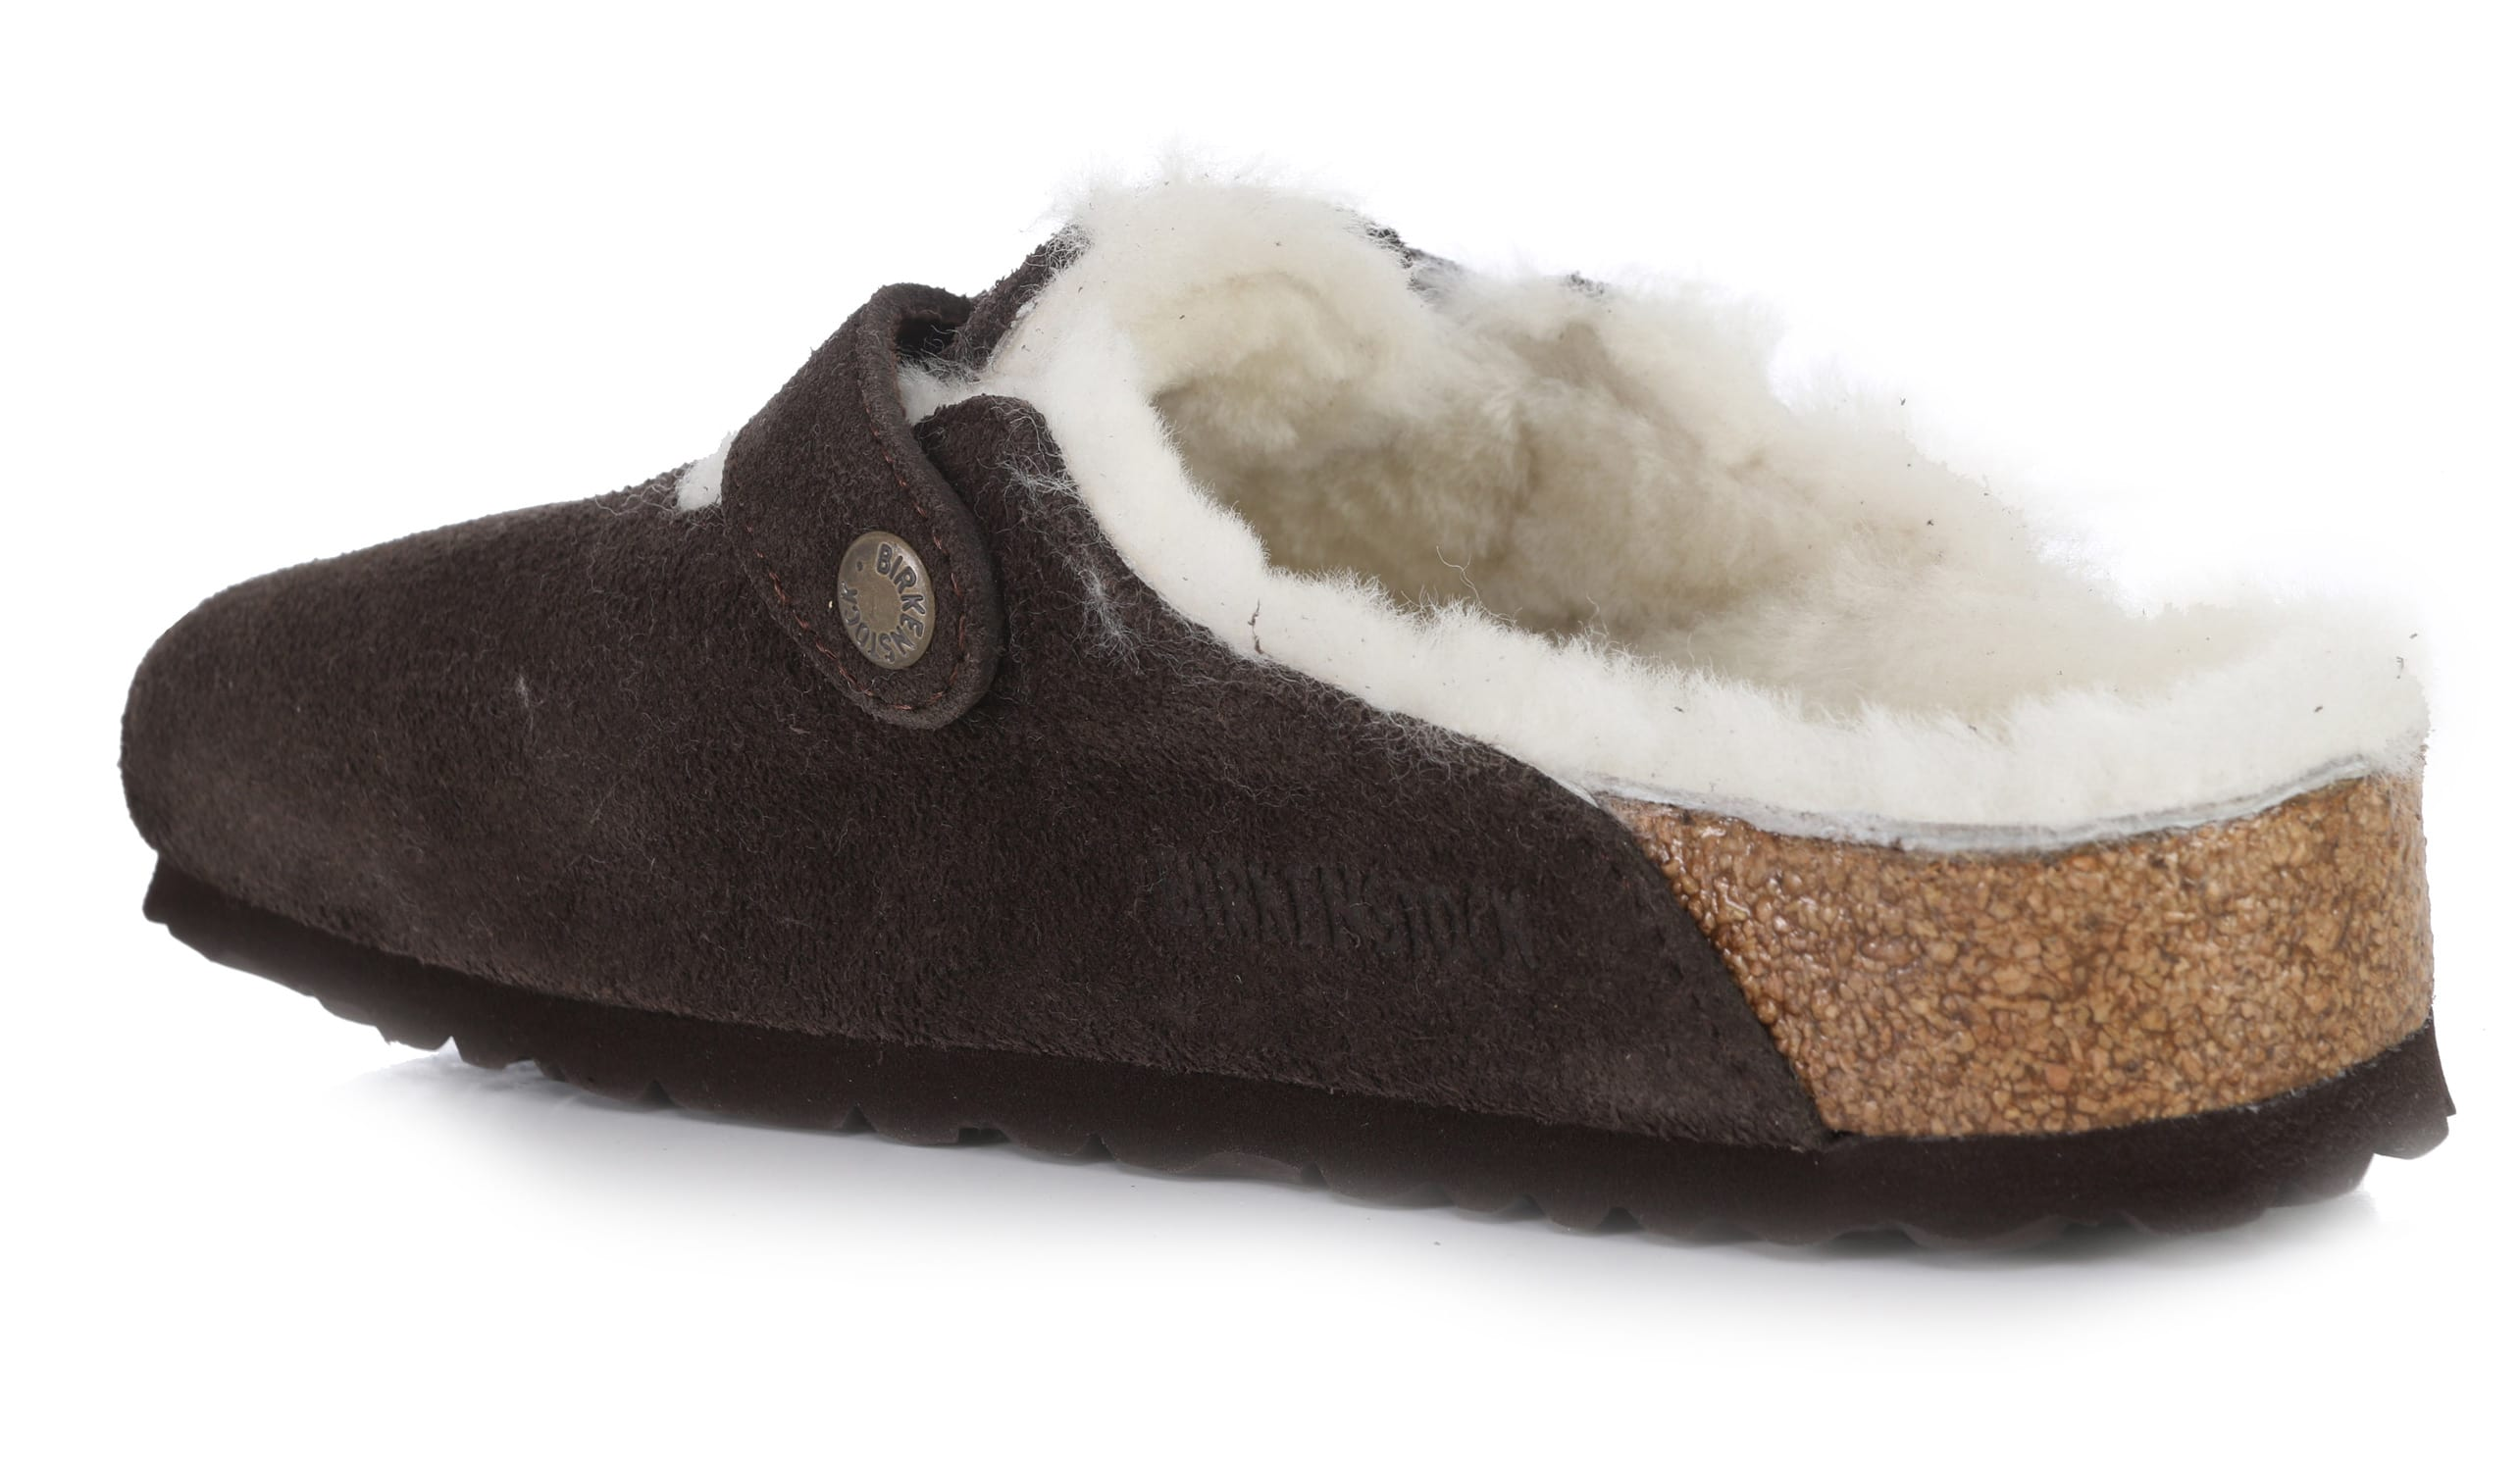 008b3fdd9c4 Birkenstock Boston Shearling Lined Clogs - Womens 2019